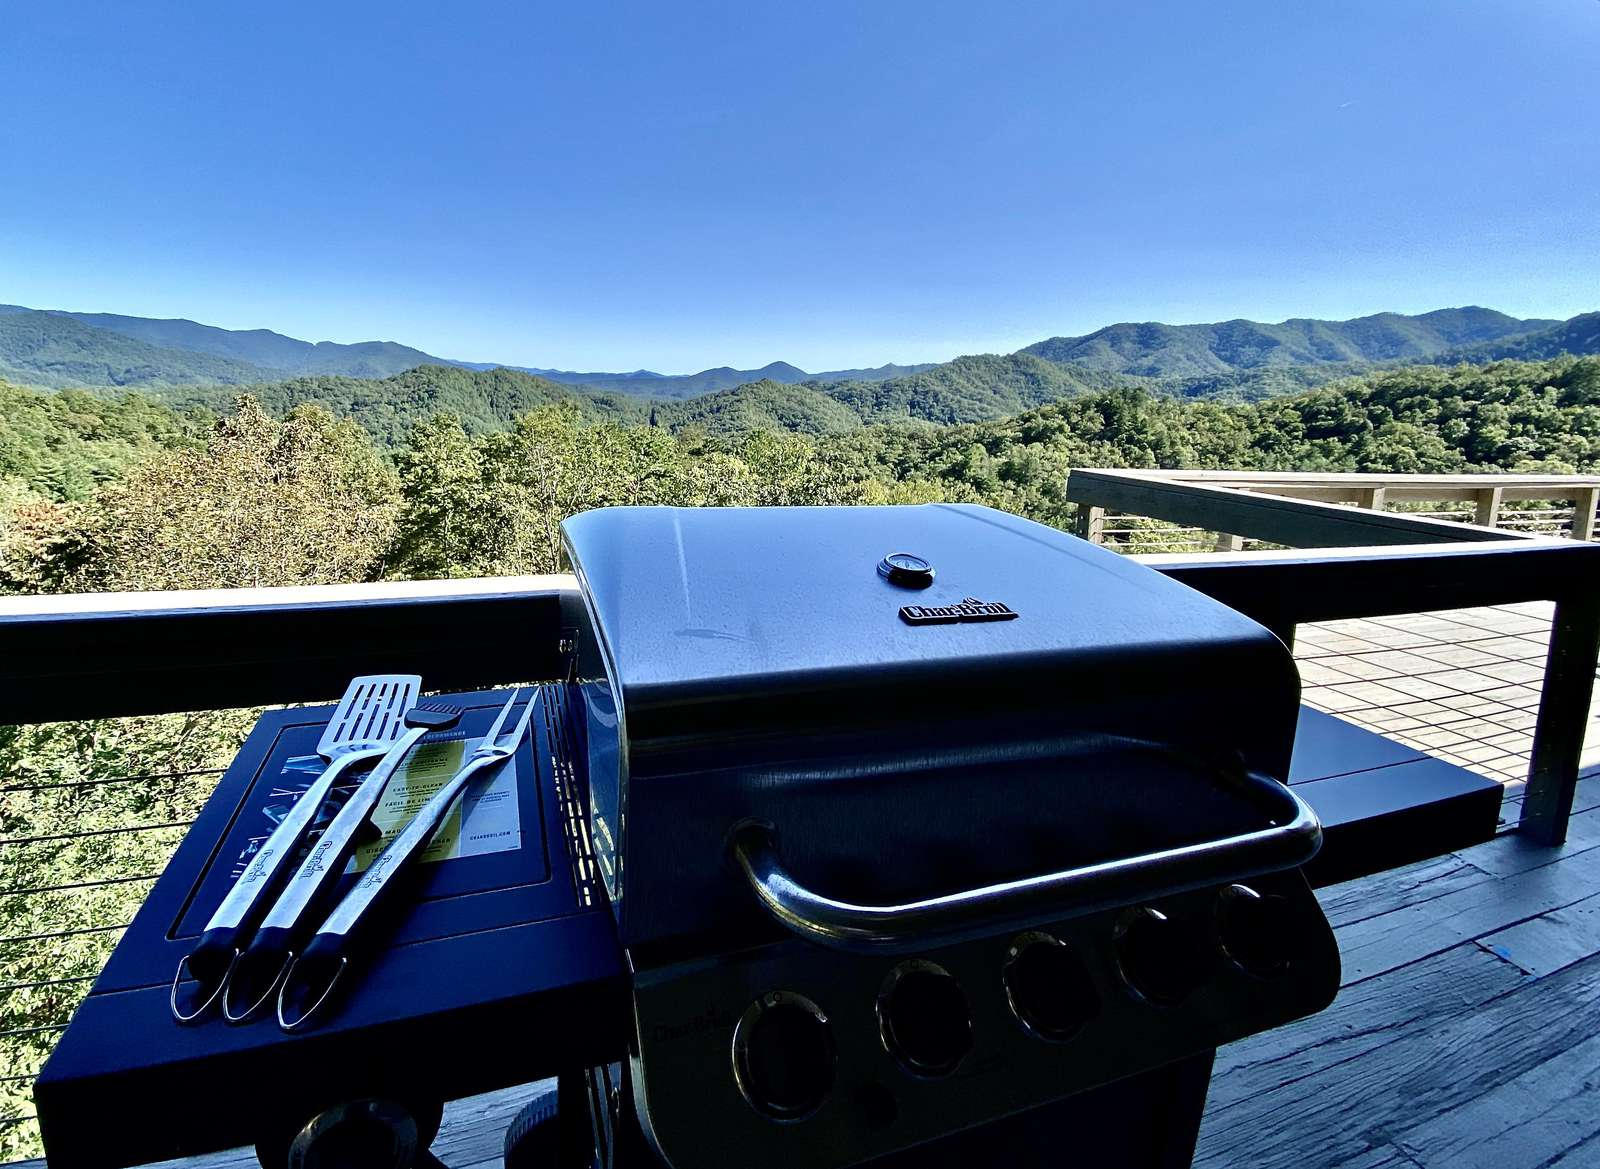 Char-Broil Gas Grill, and Propane is provided